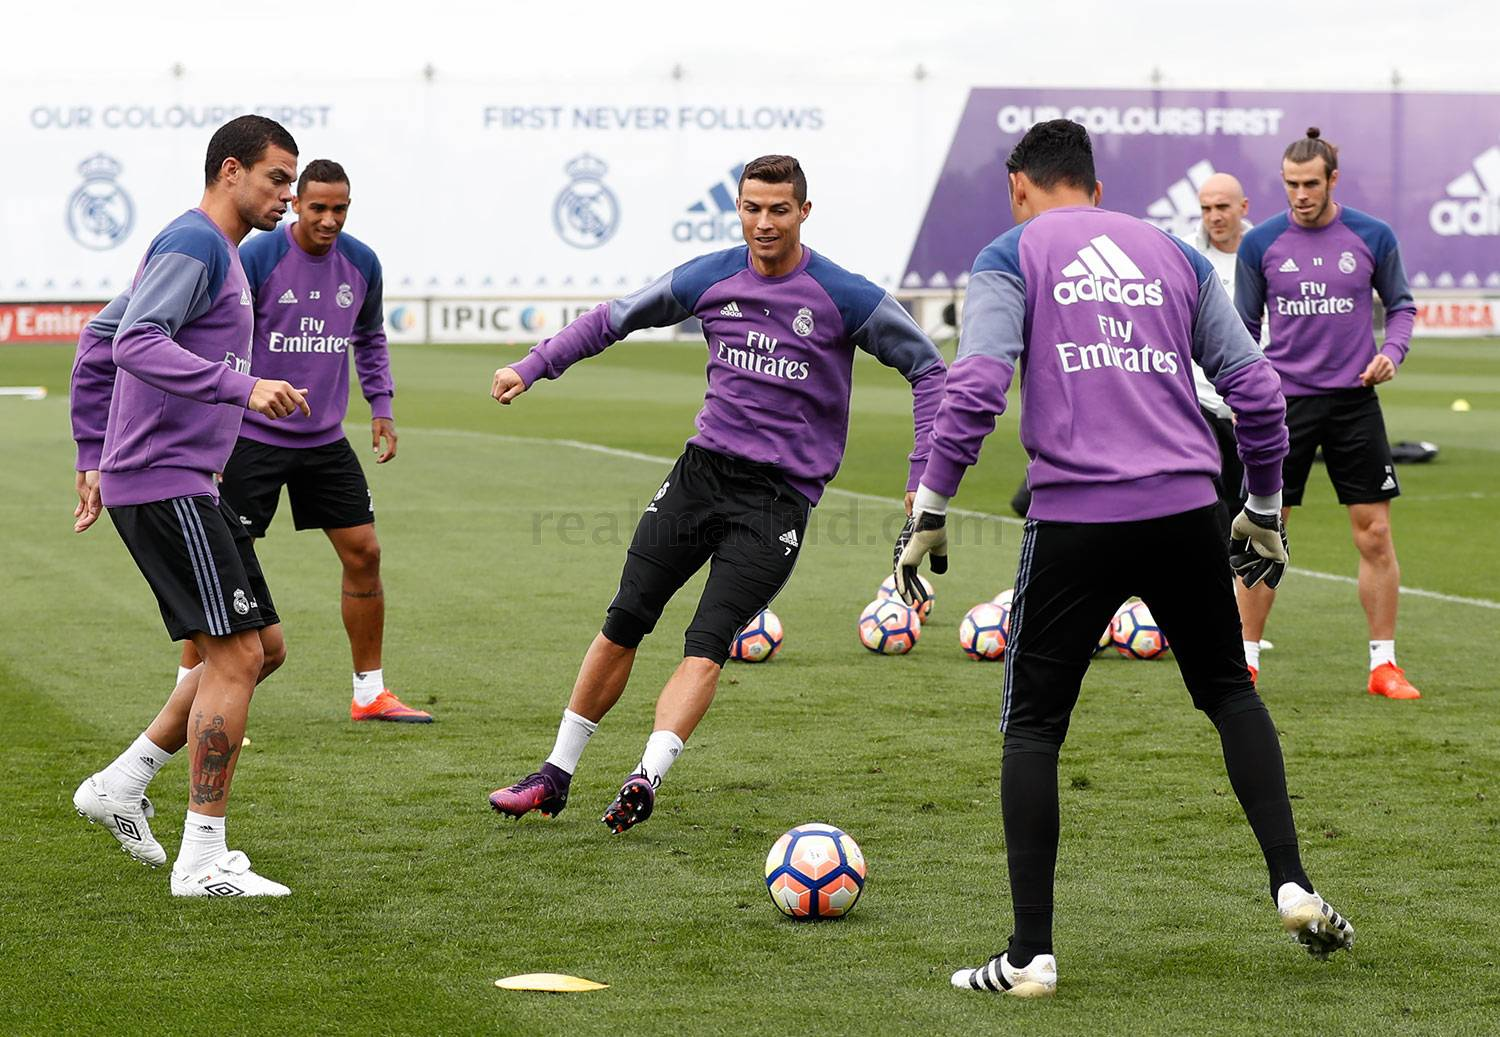 Real Madrid - Entrenamiento del Real Madrid - 14-10-2016